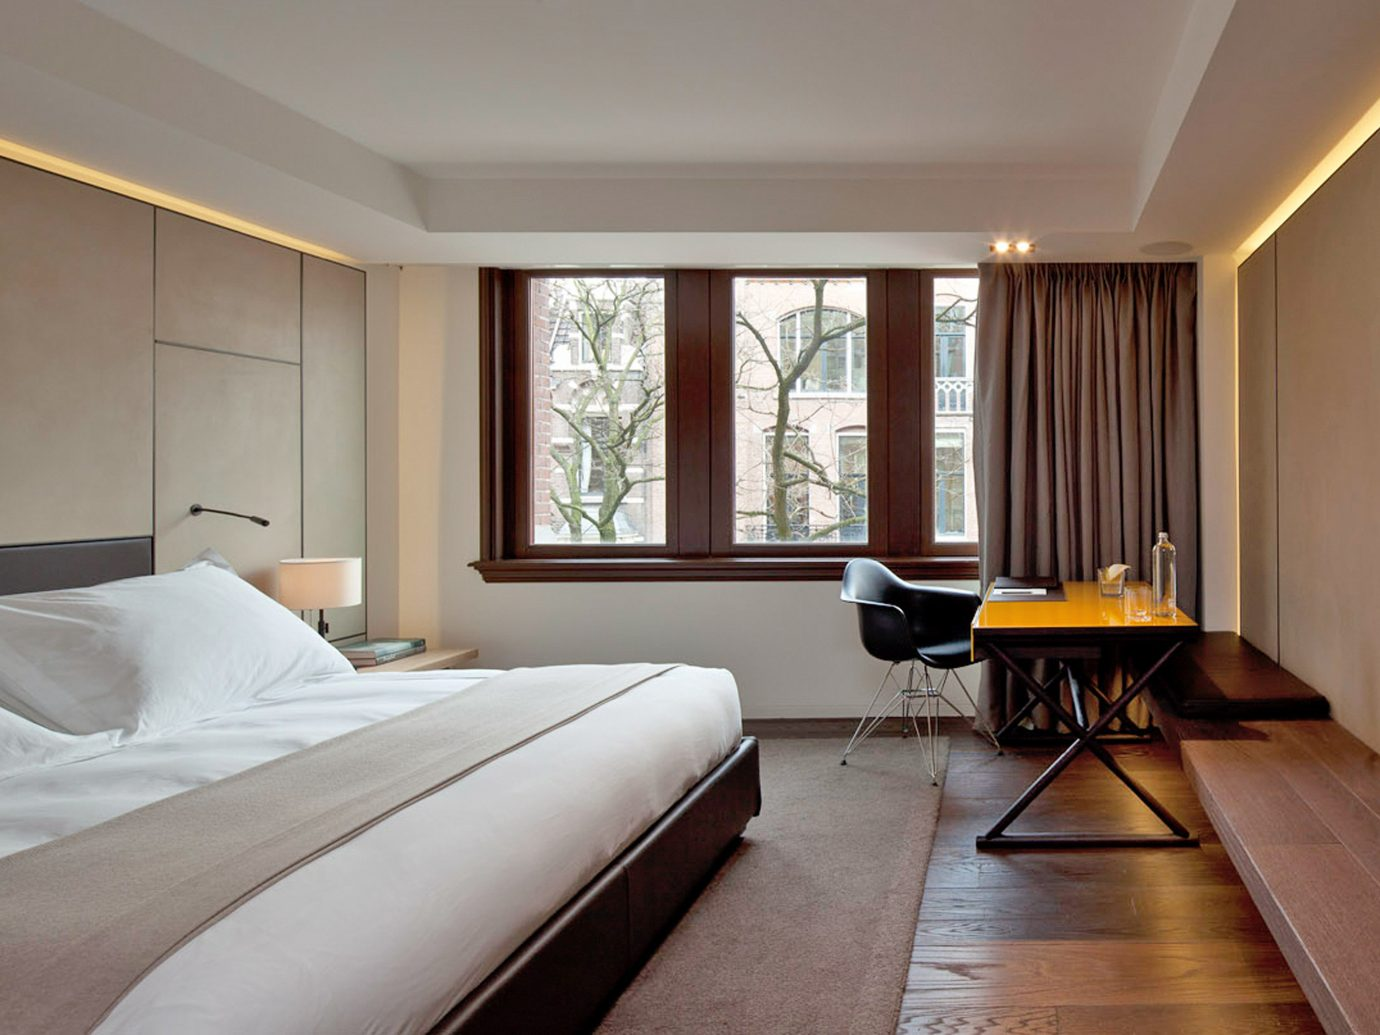 Amsterdam Bedroom Boutique Hip Hotels Modern The Netherlands bed indoor wall floor ceiling window hotel room property Suite estate interior design real estate hardwood home condominium Design living room cottage apartment